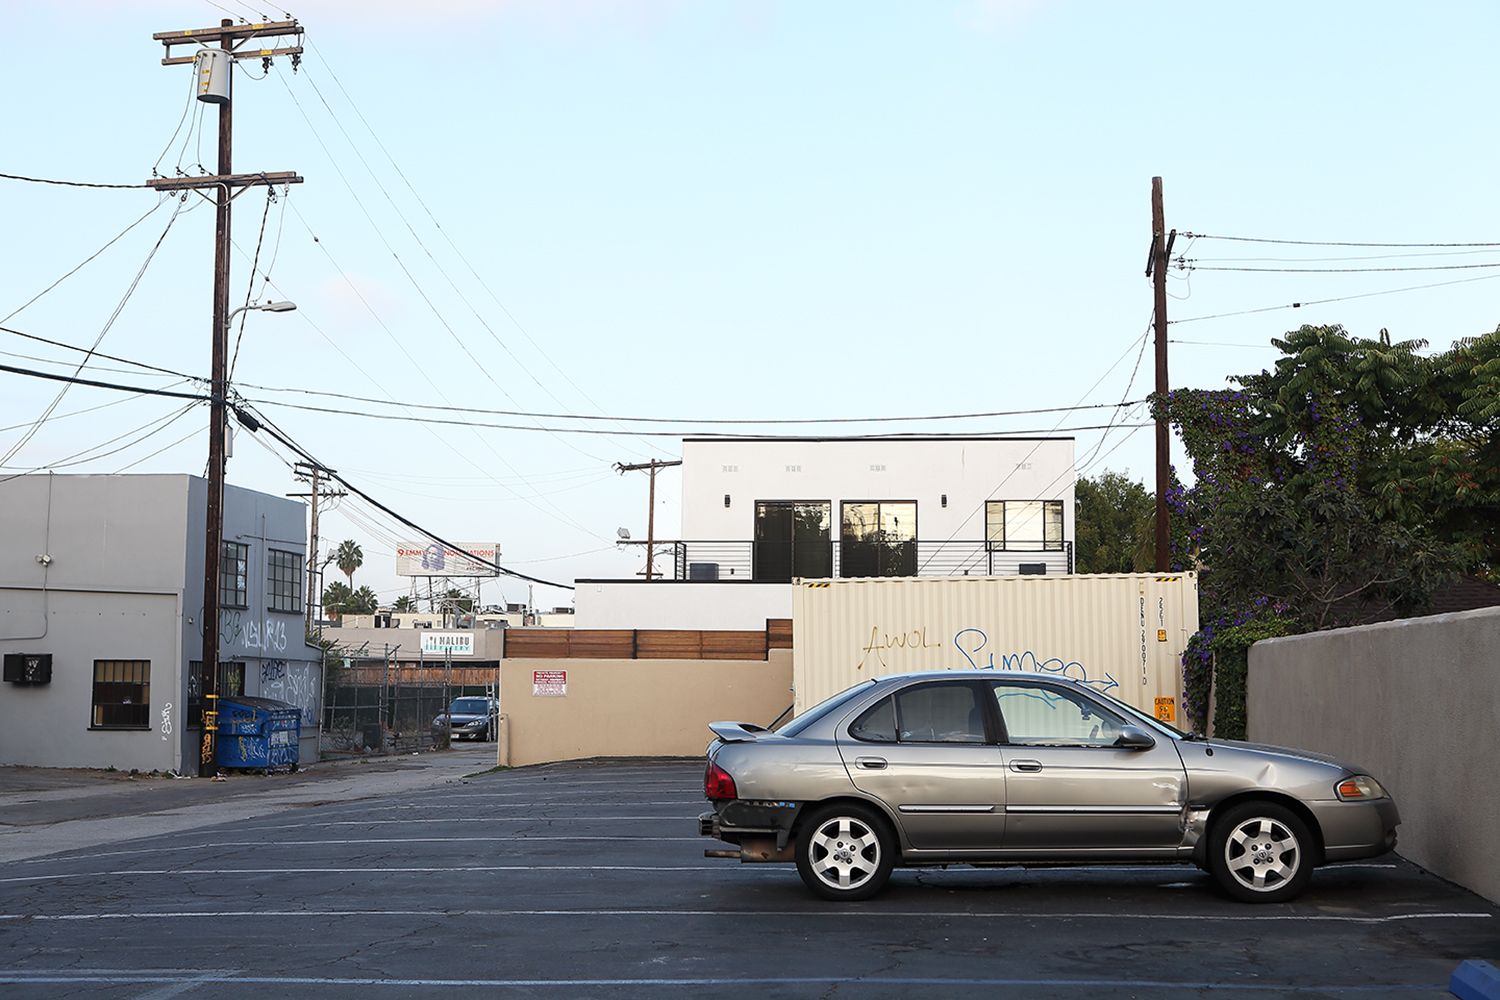 Melrose ave from the serie misplace photos mona awad